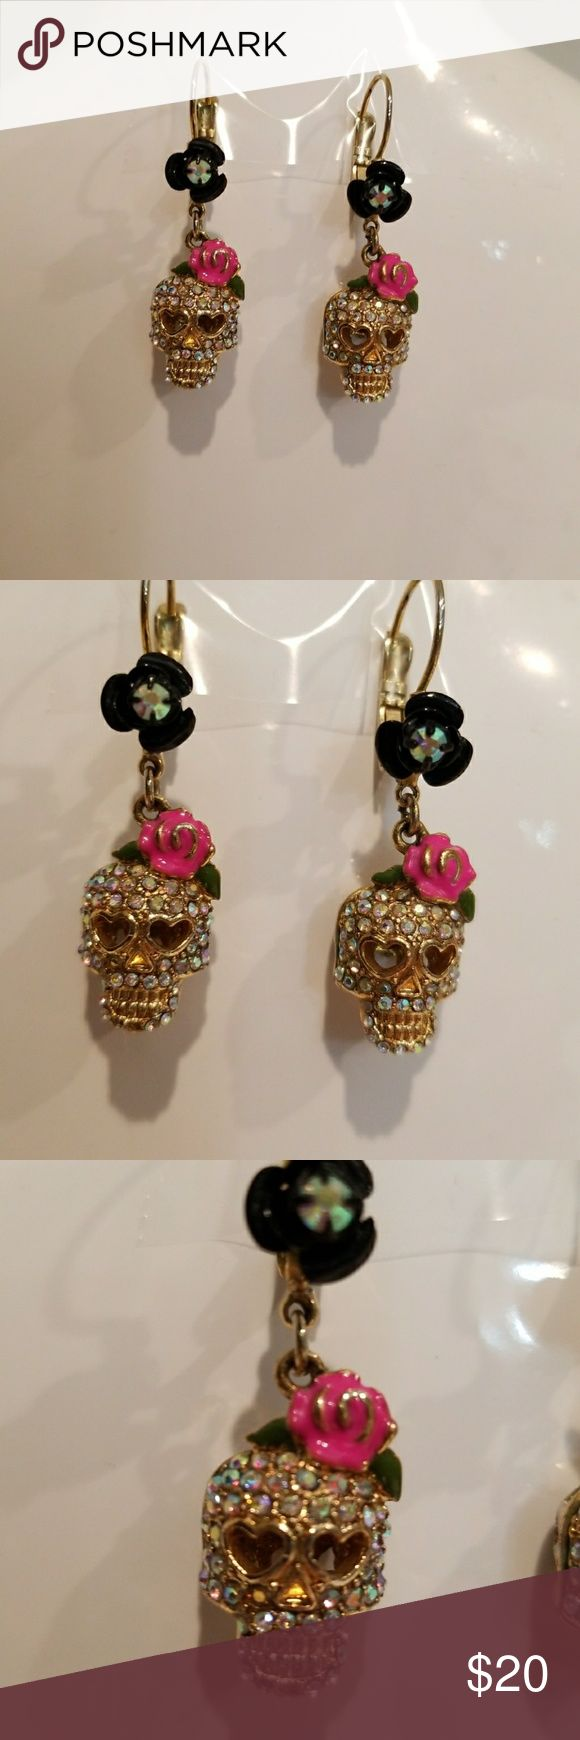 💟 Betsey Johnson Skull Earrings These are gorgeous! Shiny, like new condition - no tarnish. HOWEVER, if you look extremely closely at pic 3, there is a rhinestone or two missing from the jaw. This is not noticeable when wearing, but I had to mention just in case. Cleaned + sanitized in my sonic cleaner. Betsey Johnson Jewelry Earrings